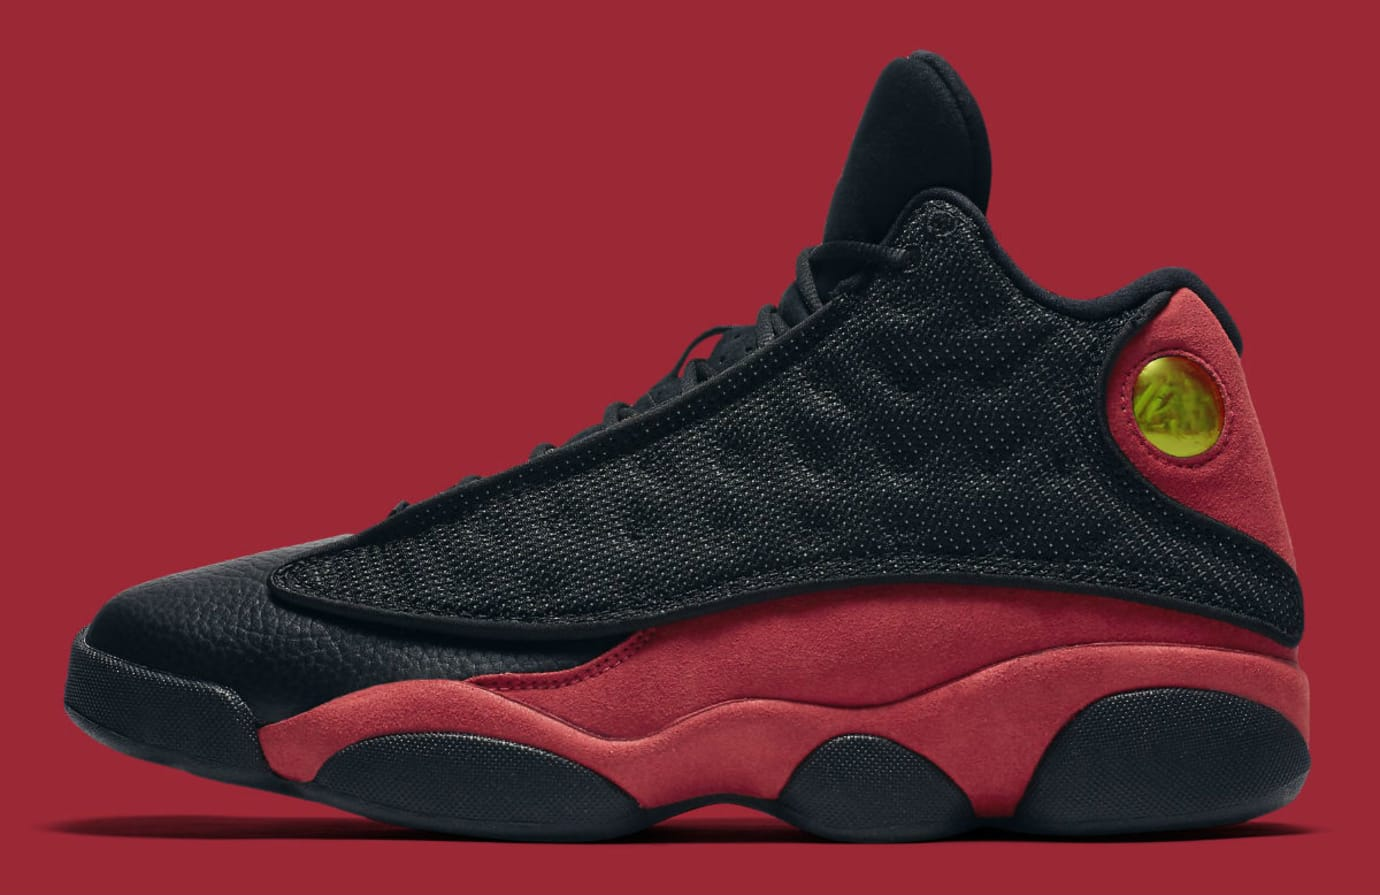 13470087cbe Air Jordan 13 XIII Bred 2017 Release Date 414571-004 | Sole Collector